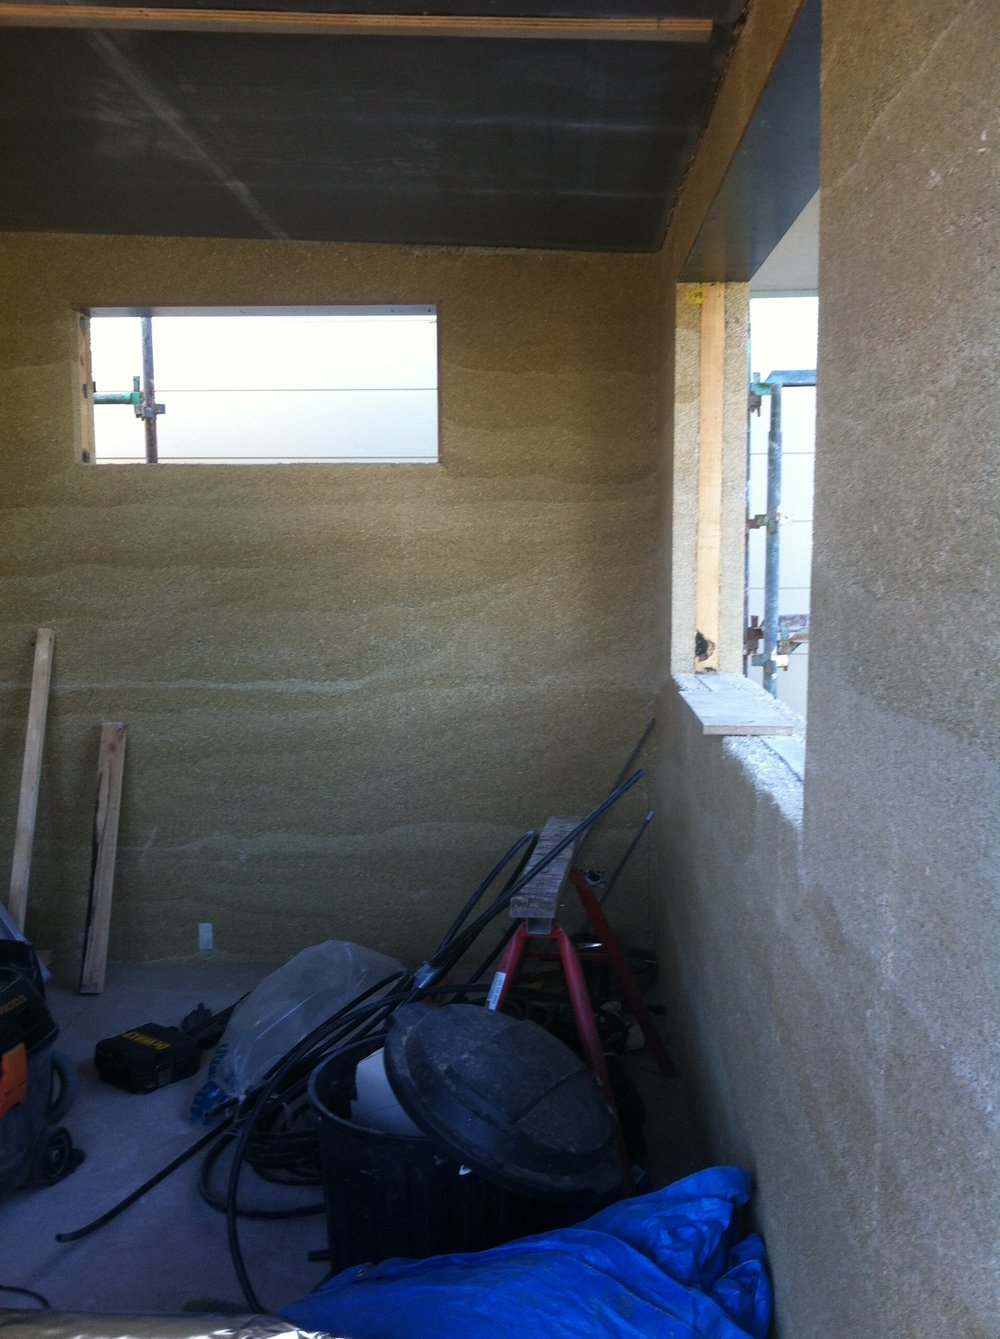 LOW_MARRICKVILLE-HEMPCRETE-INTERNAL-CONSTRUCTION.jpg